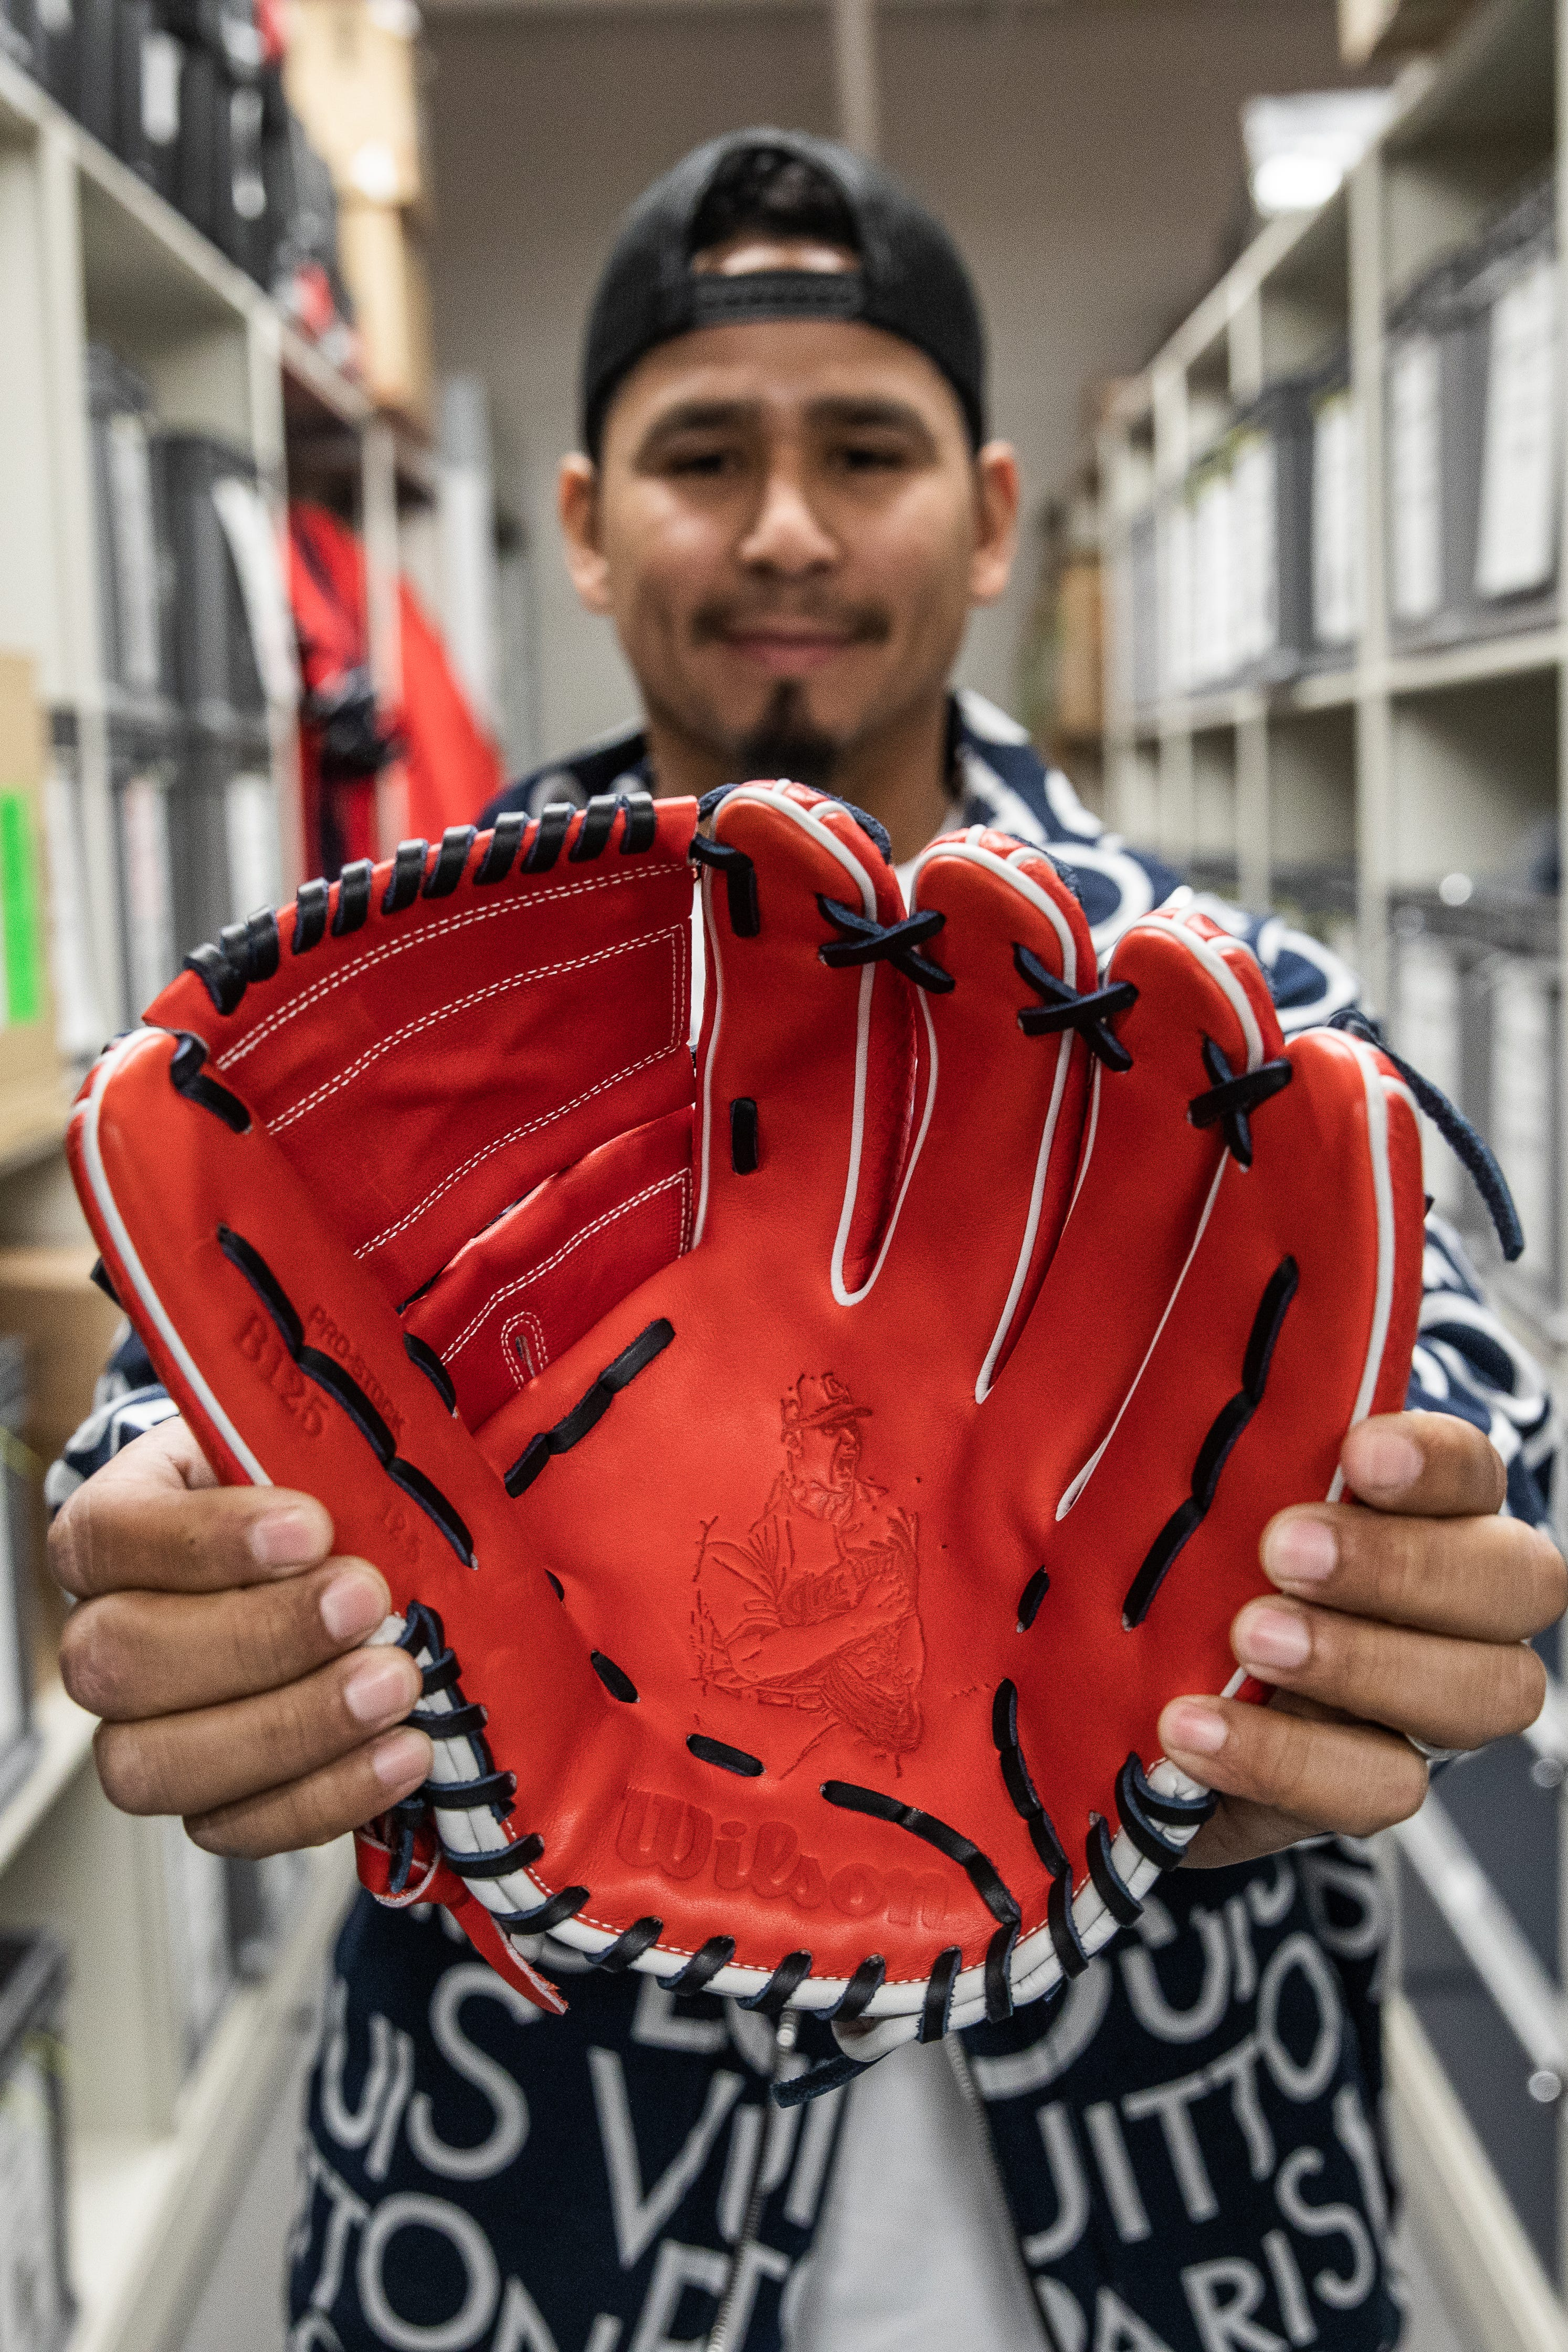 Currasco smiling with glove